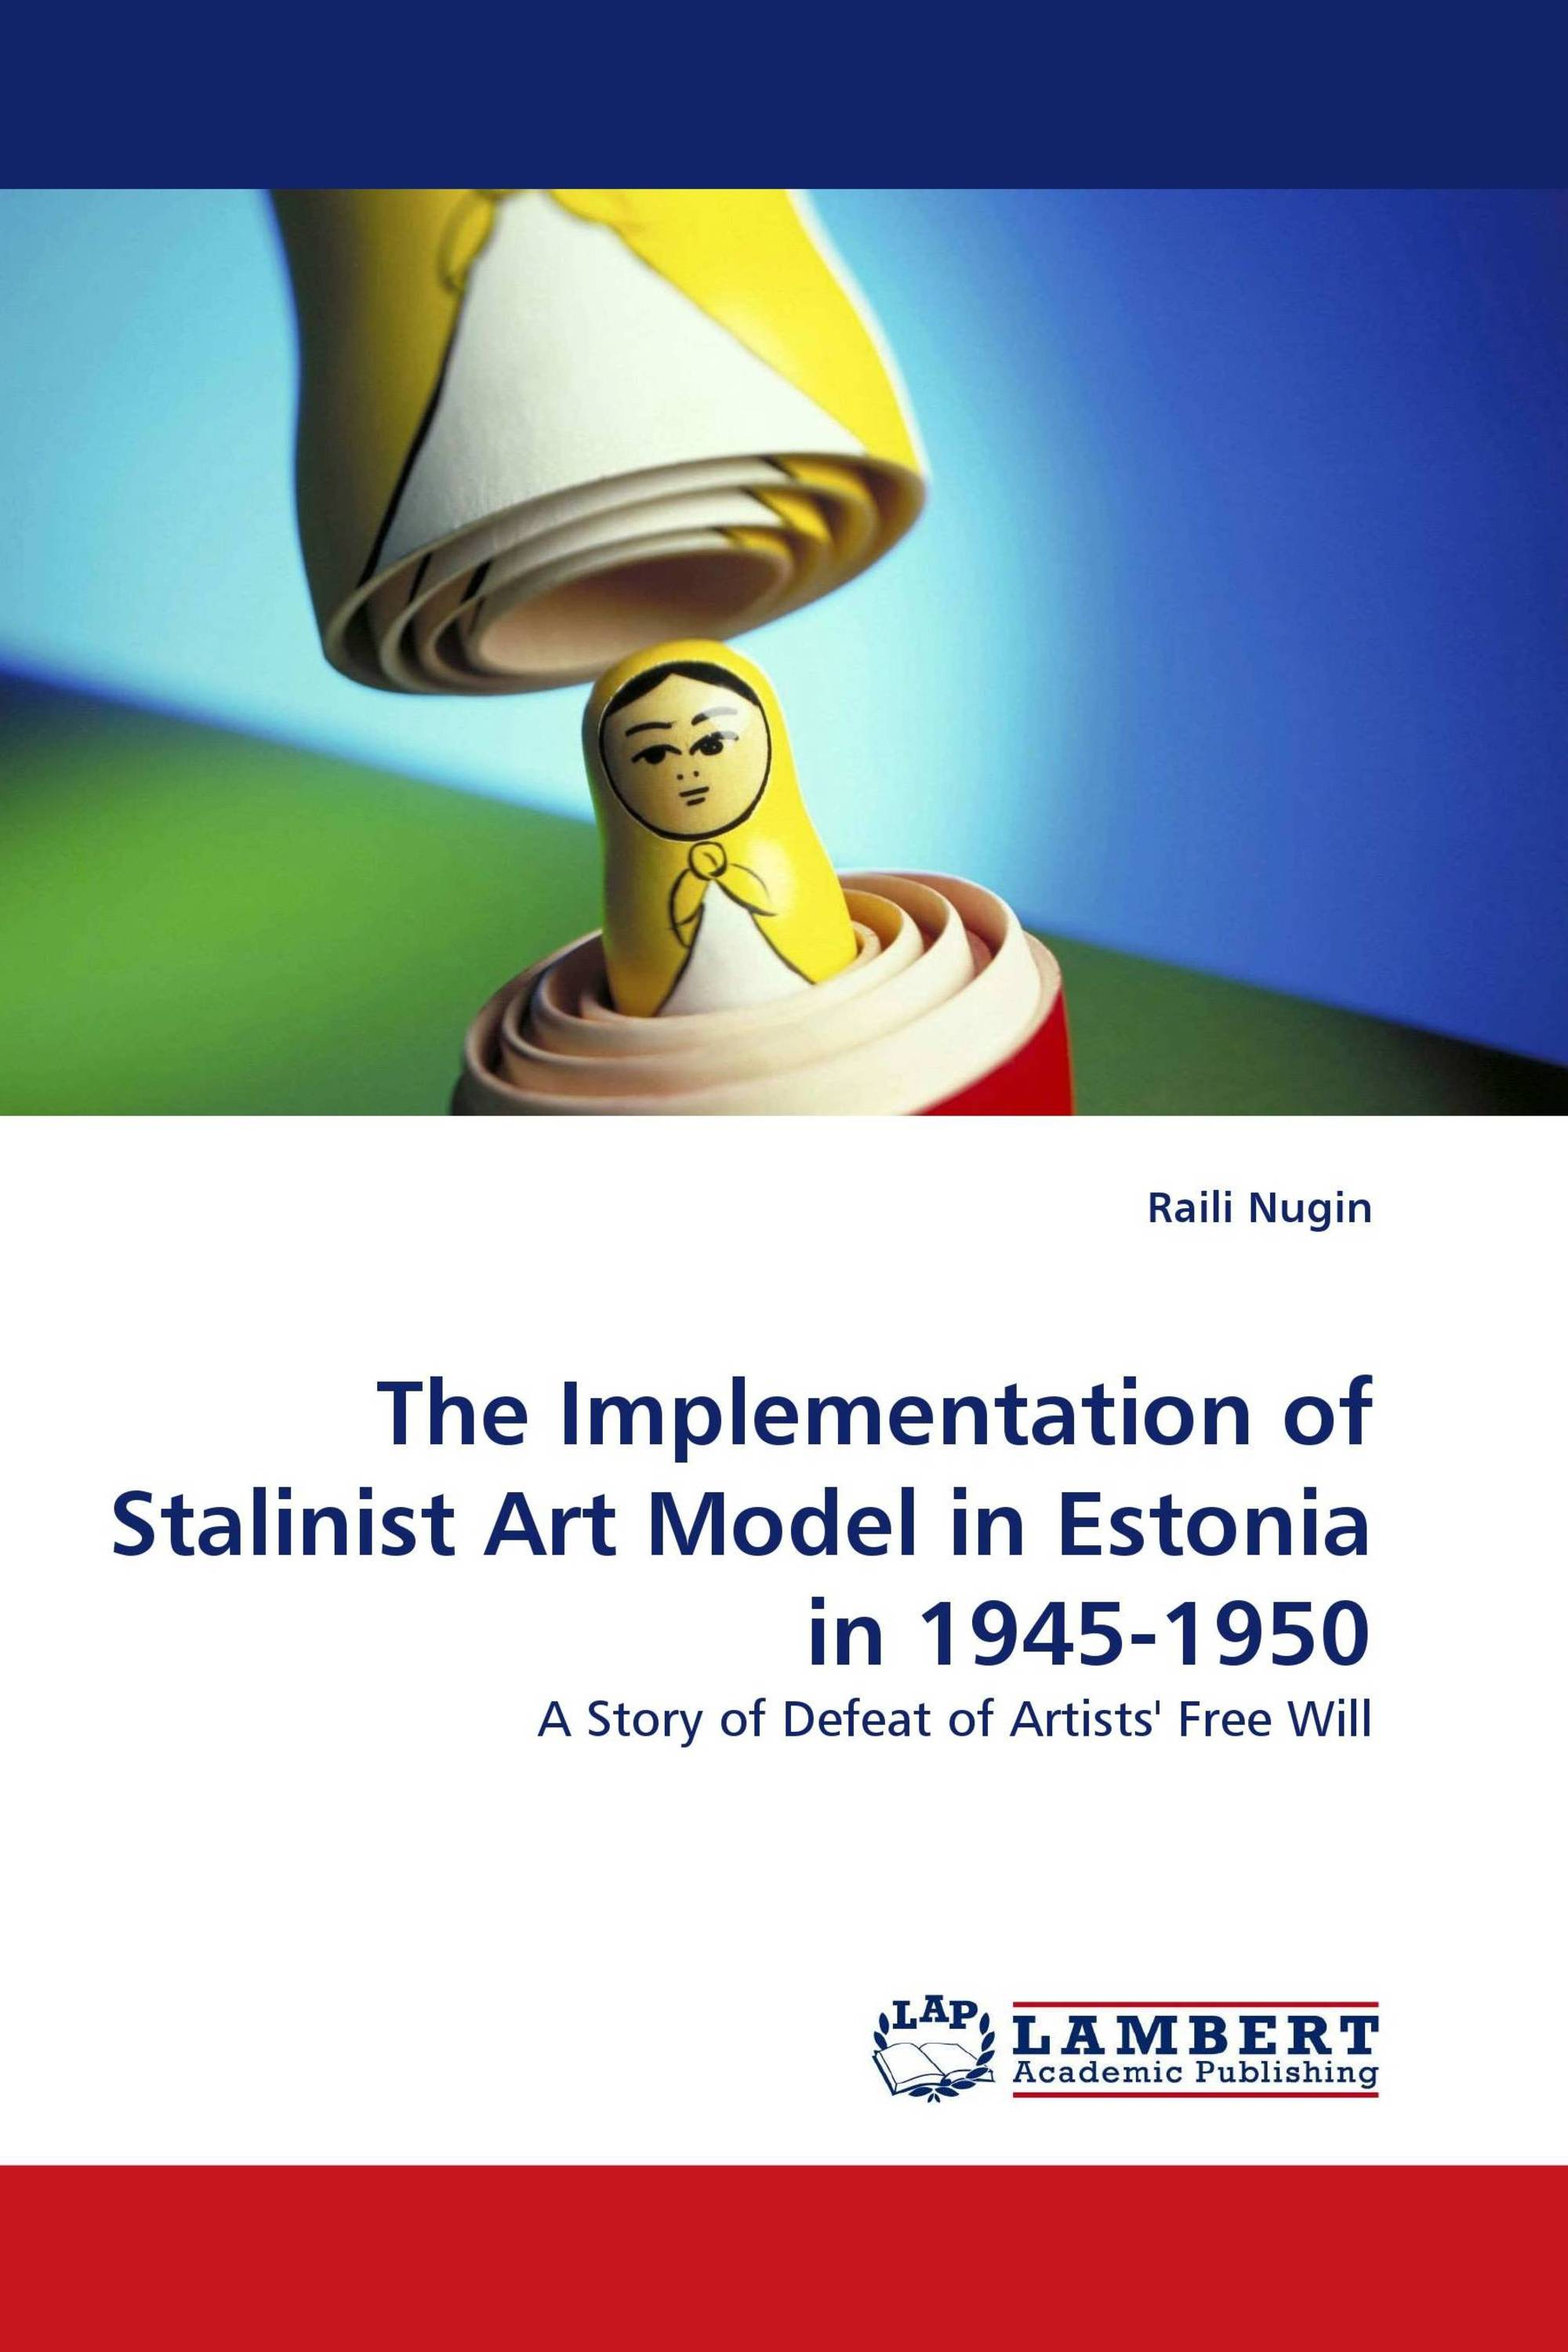 The Implementation of Stalinist Art Model in Estonia in 1945-1950